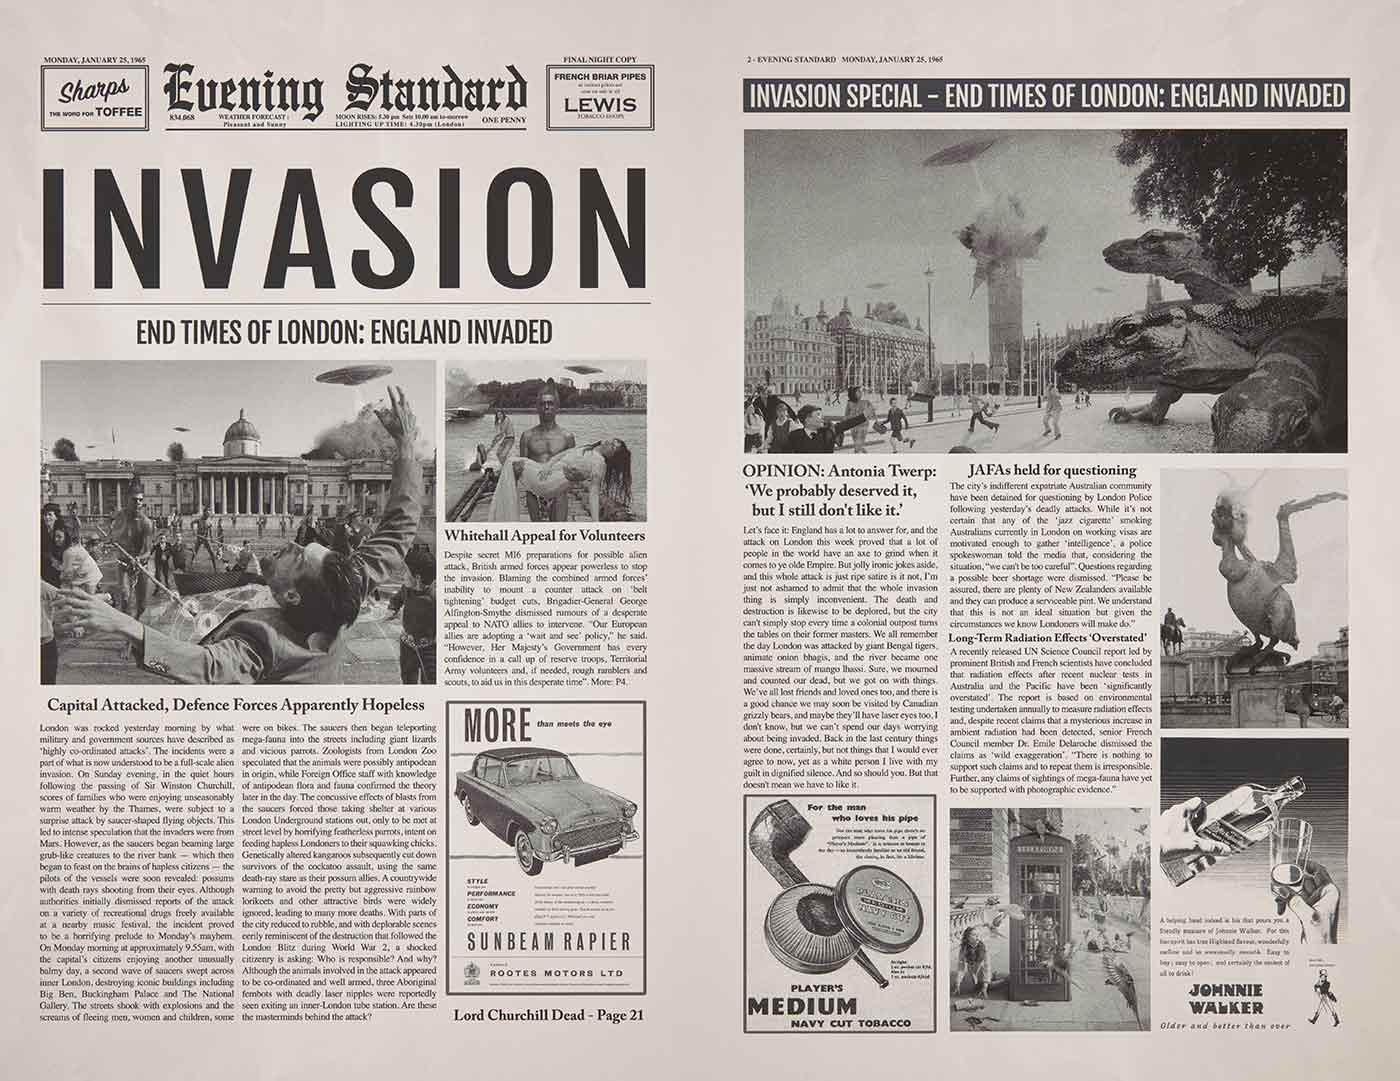 A print on an A3 sized sheet of light card. It mimics the layout of the 'Evening Standard' newspaper and has the headline 'INVASION / END TIMES OF LONDON: ENGLAND INVADED'. It features several photographs showing flying saucers and lizards attacking London. It also features a satirical body of text referring to armed Australian mega fauna and three Aboriginal fembots that are part of the attack. - click to view larger image